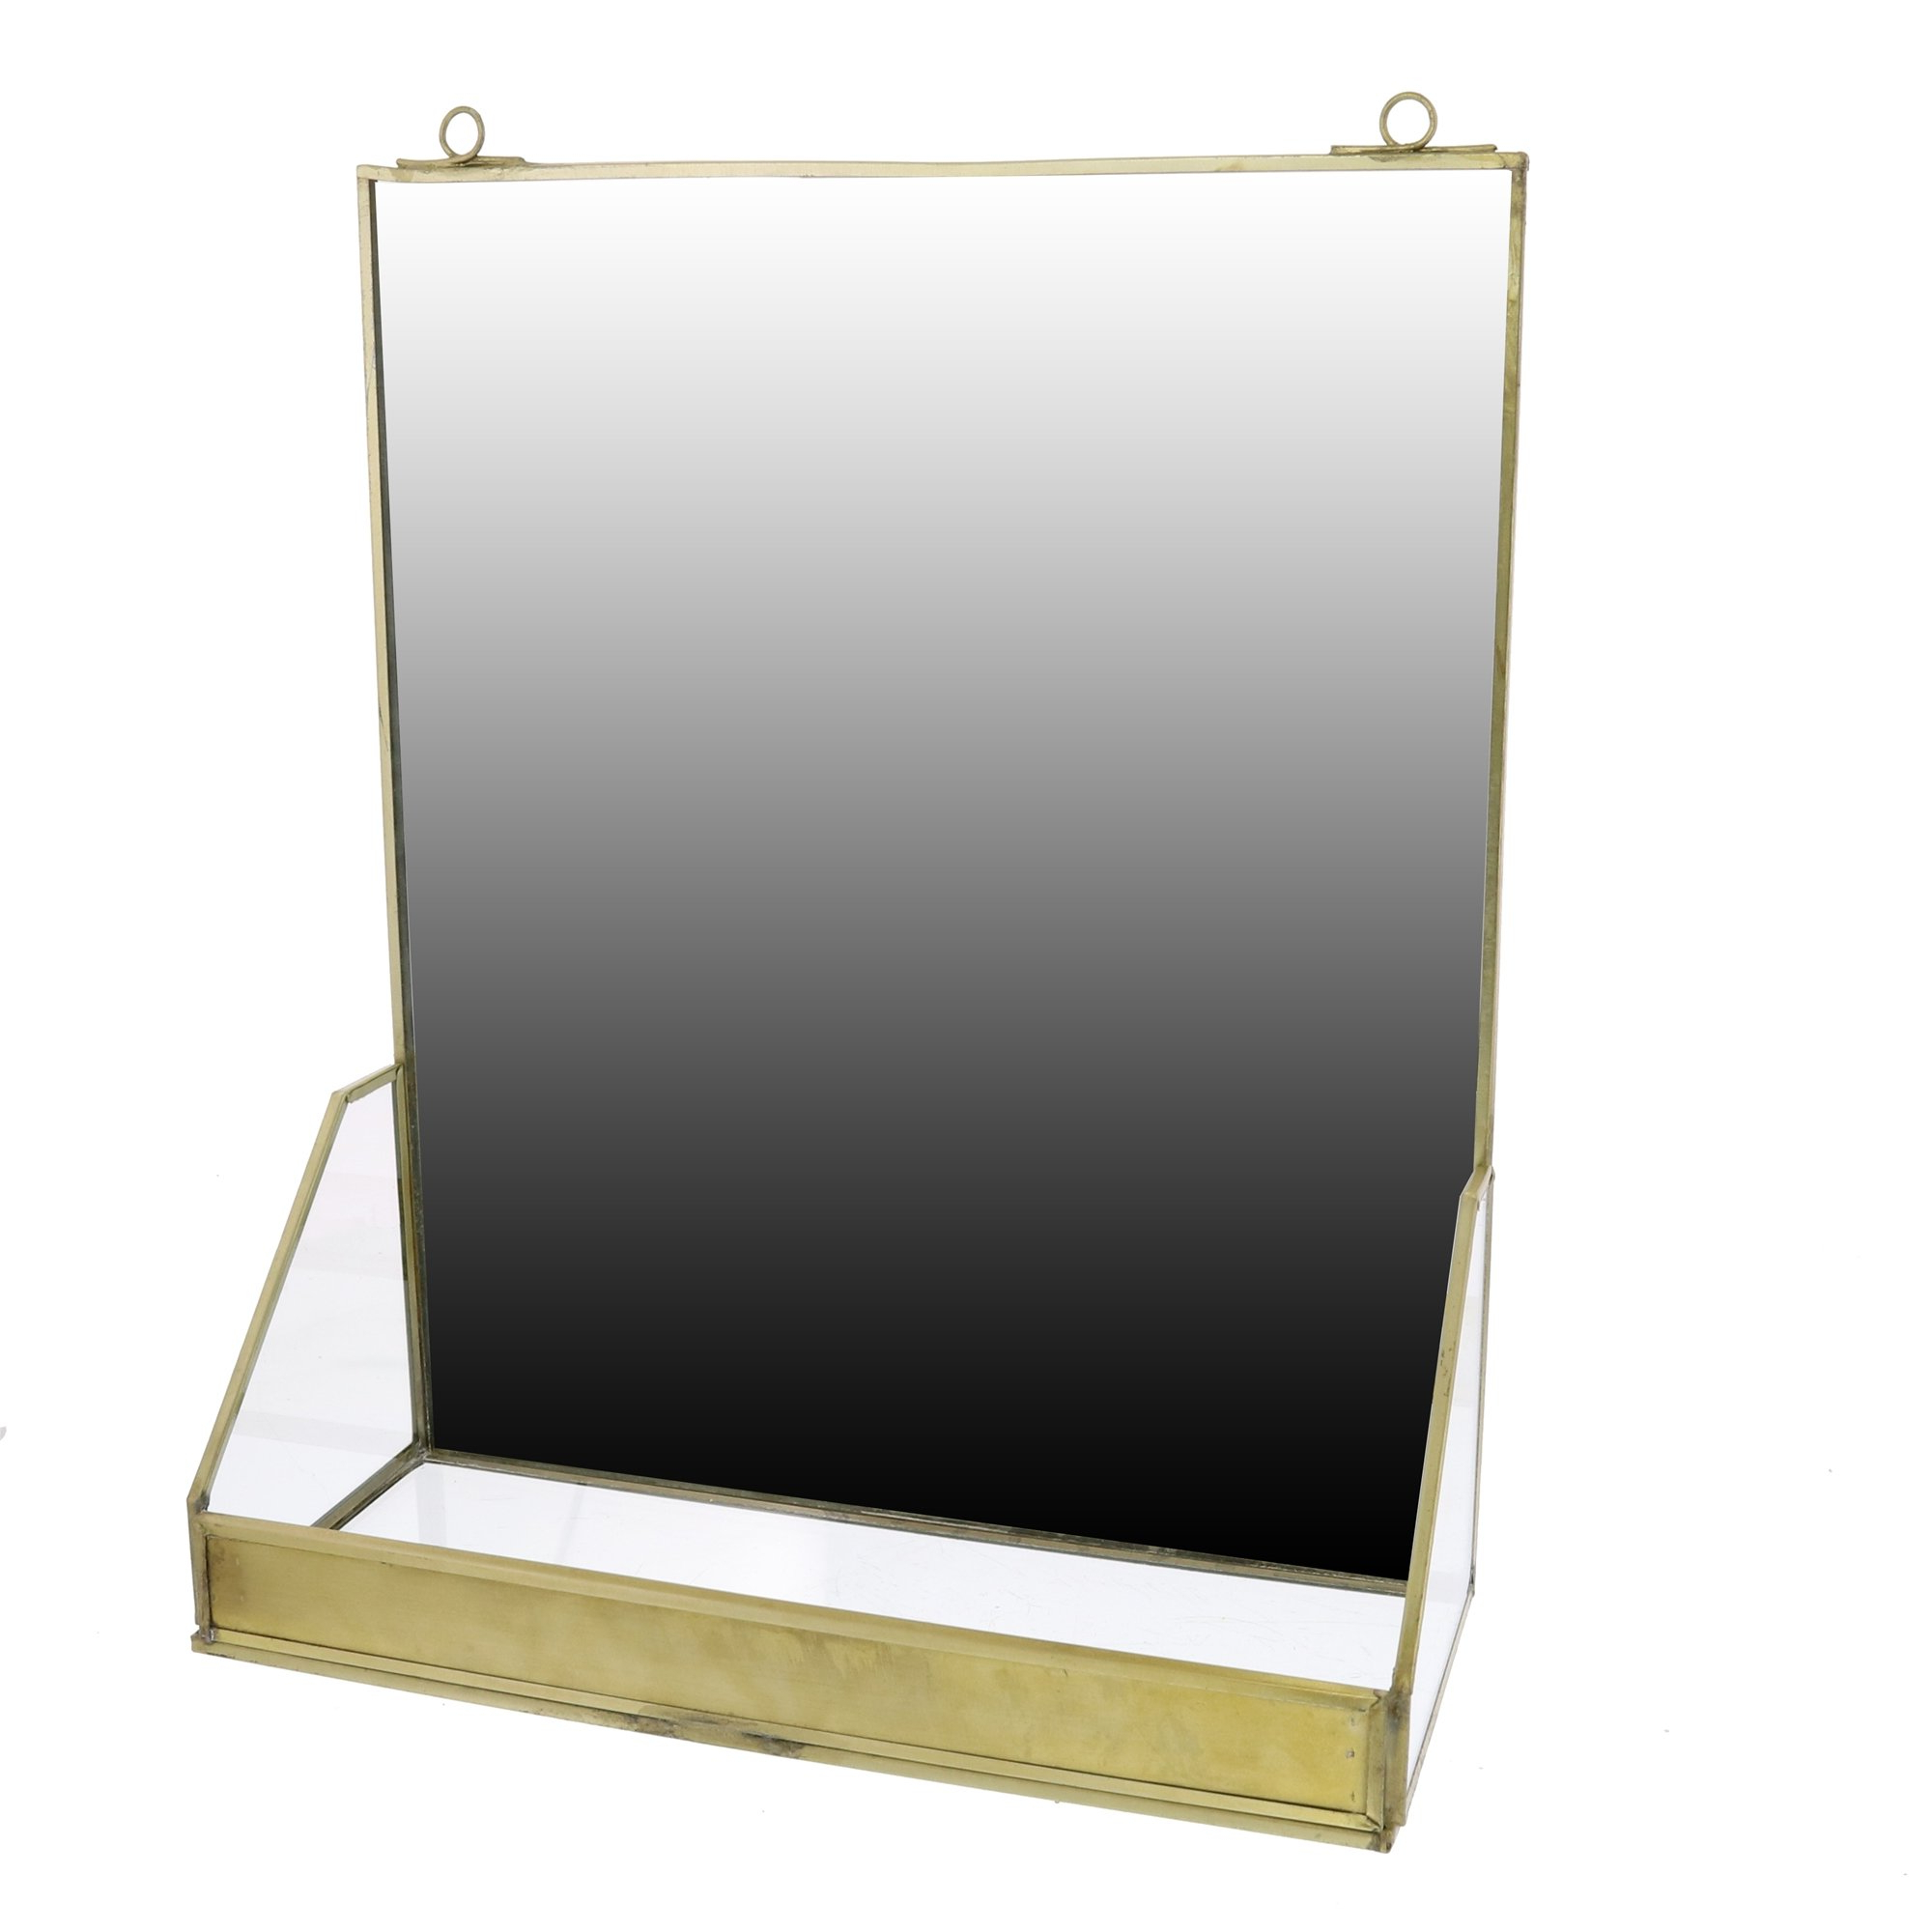 Bartolo Accent Mirrors Inside Most Up To Date Thrailkill Accent Mirror With Shelf Brass (View 17 of 20)